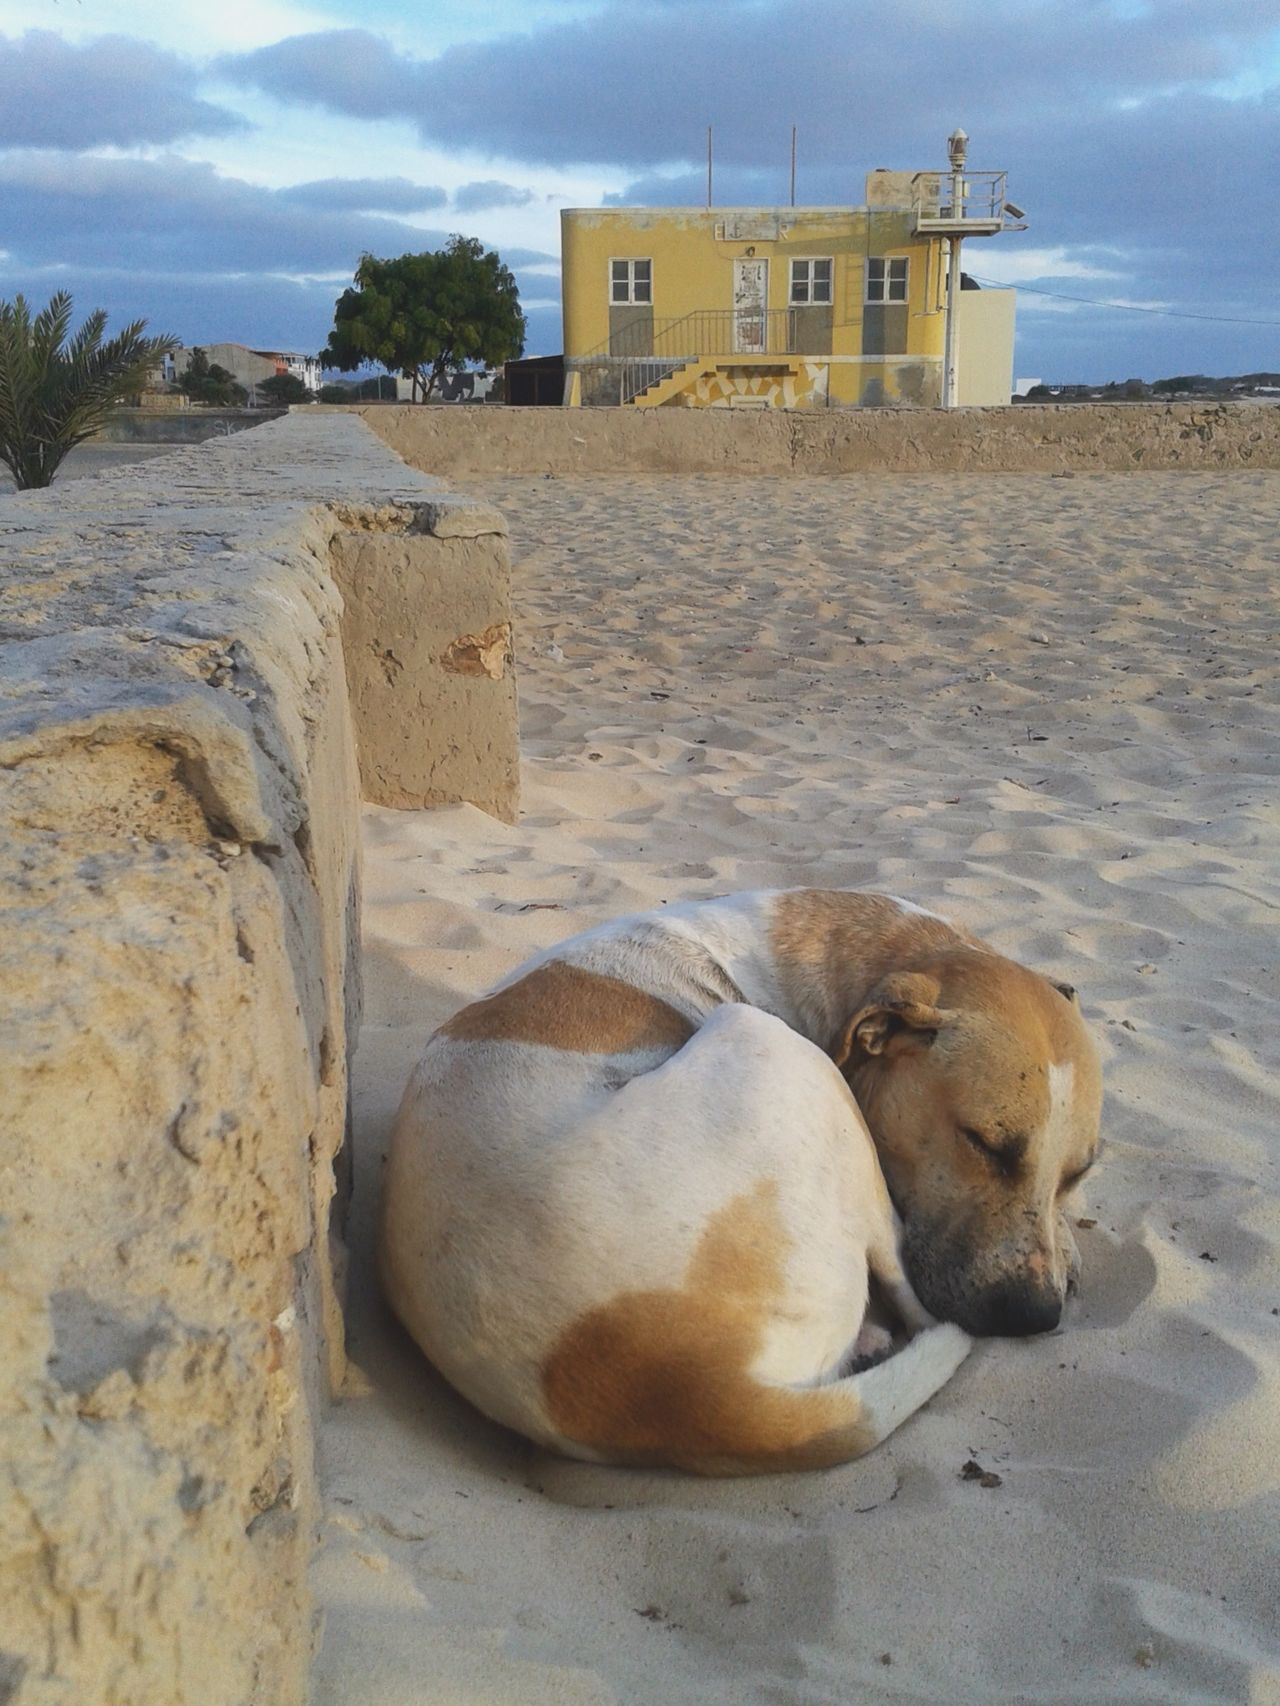 Beauty In Nature Cloud Cloud - Sky Day Dog Domestic Animals Found On The Roll Lying Down Mammal Nature No People Outdoors Pets Relaxation Relaxing Resting Shore Sky Tranquility at Praia De Diante in Sal Rei , Boa Vista, Cabo Verde Cape Verde Night Night, Sleep Tight